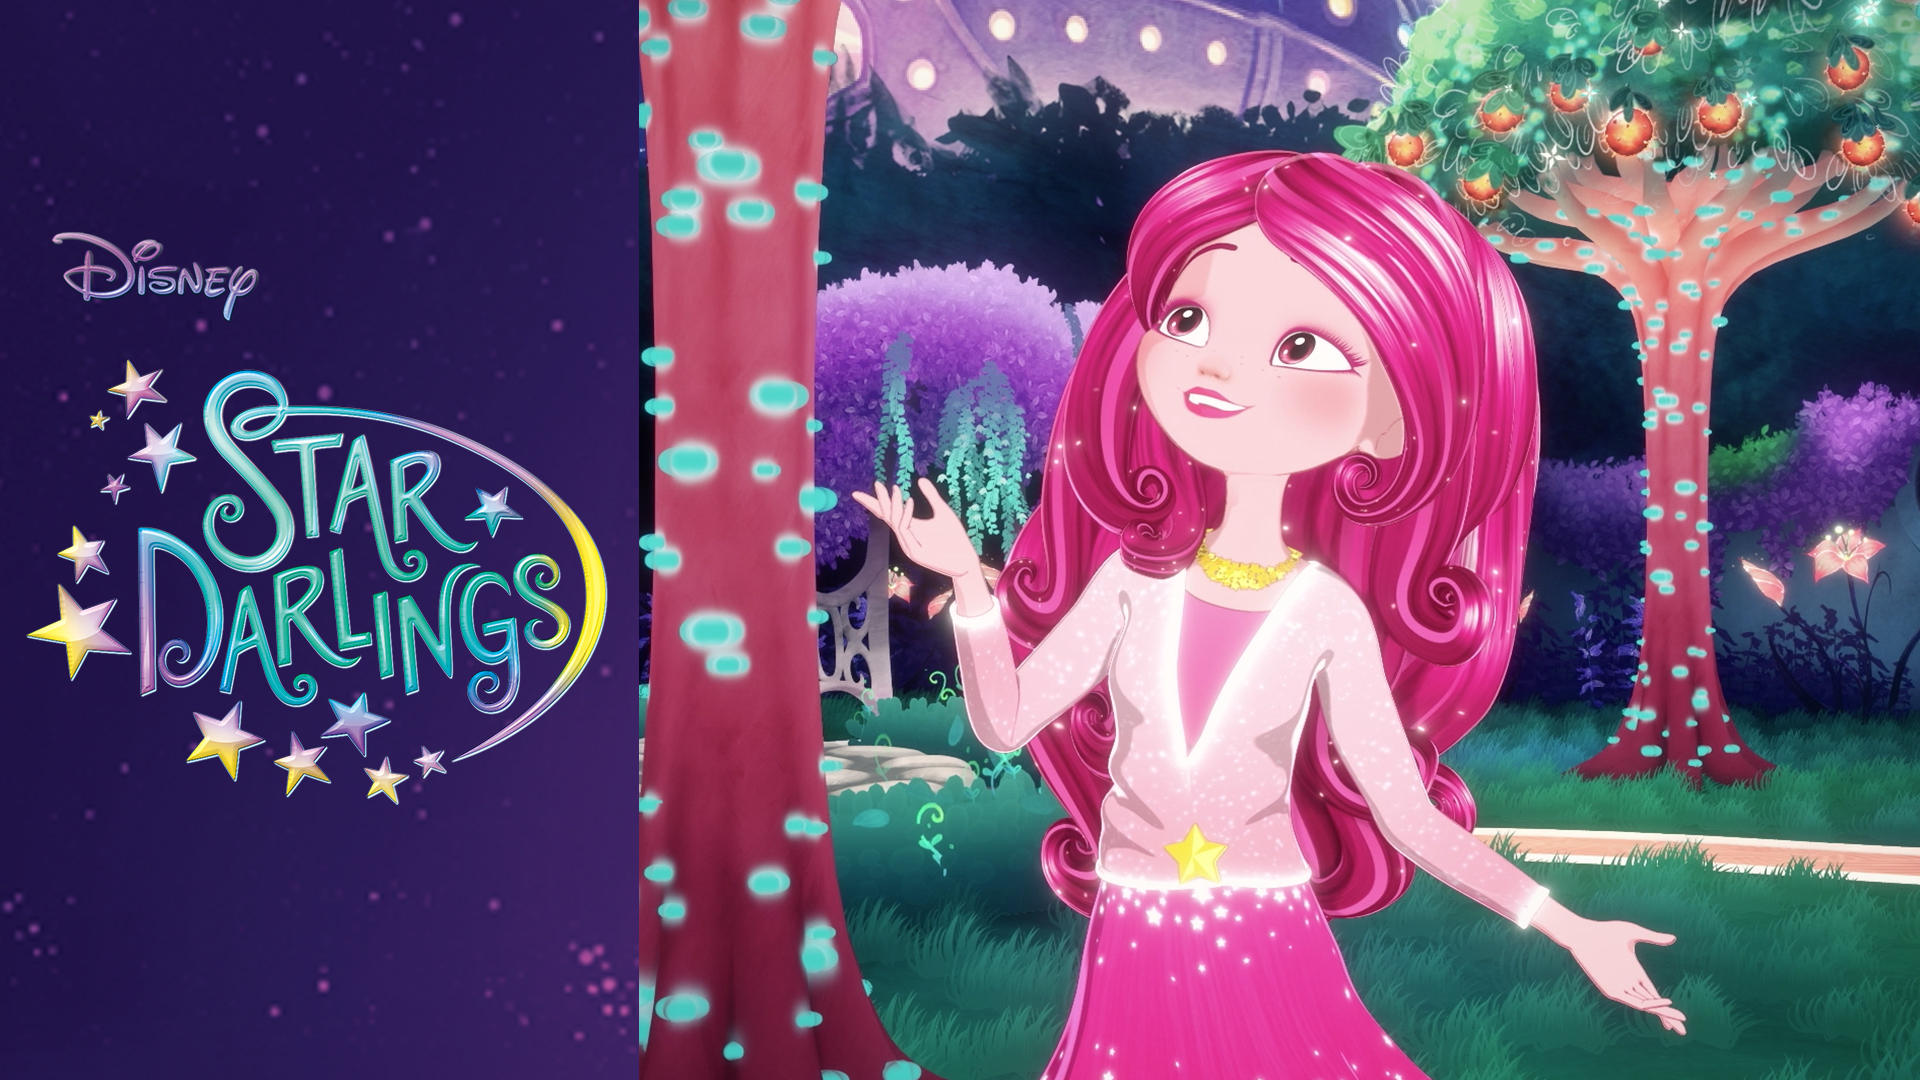 Lib-erated - Disney's Star Darlings Clip